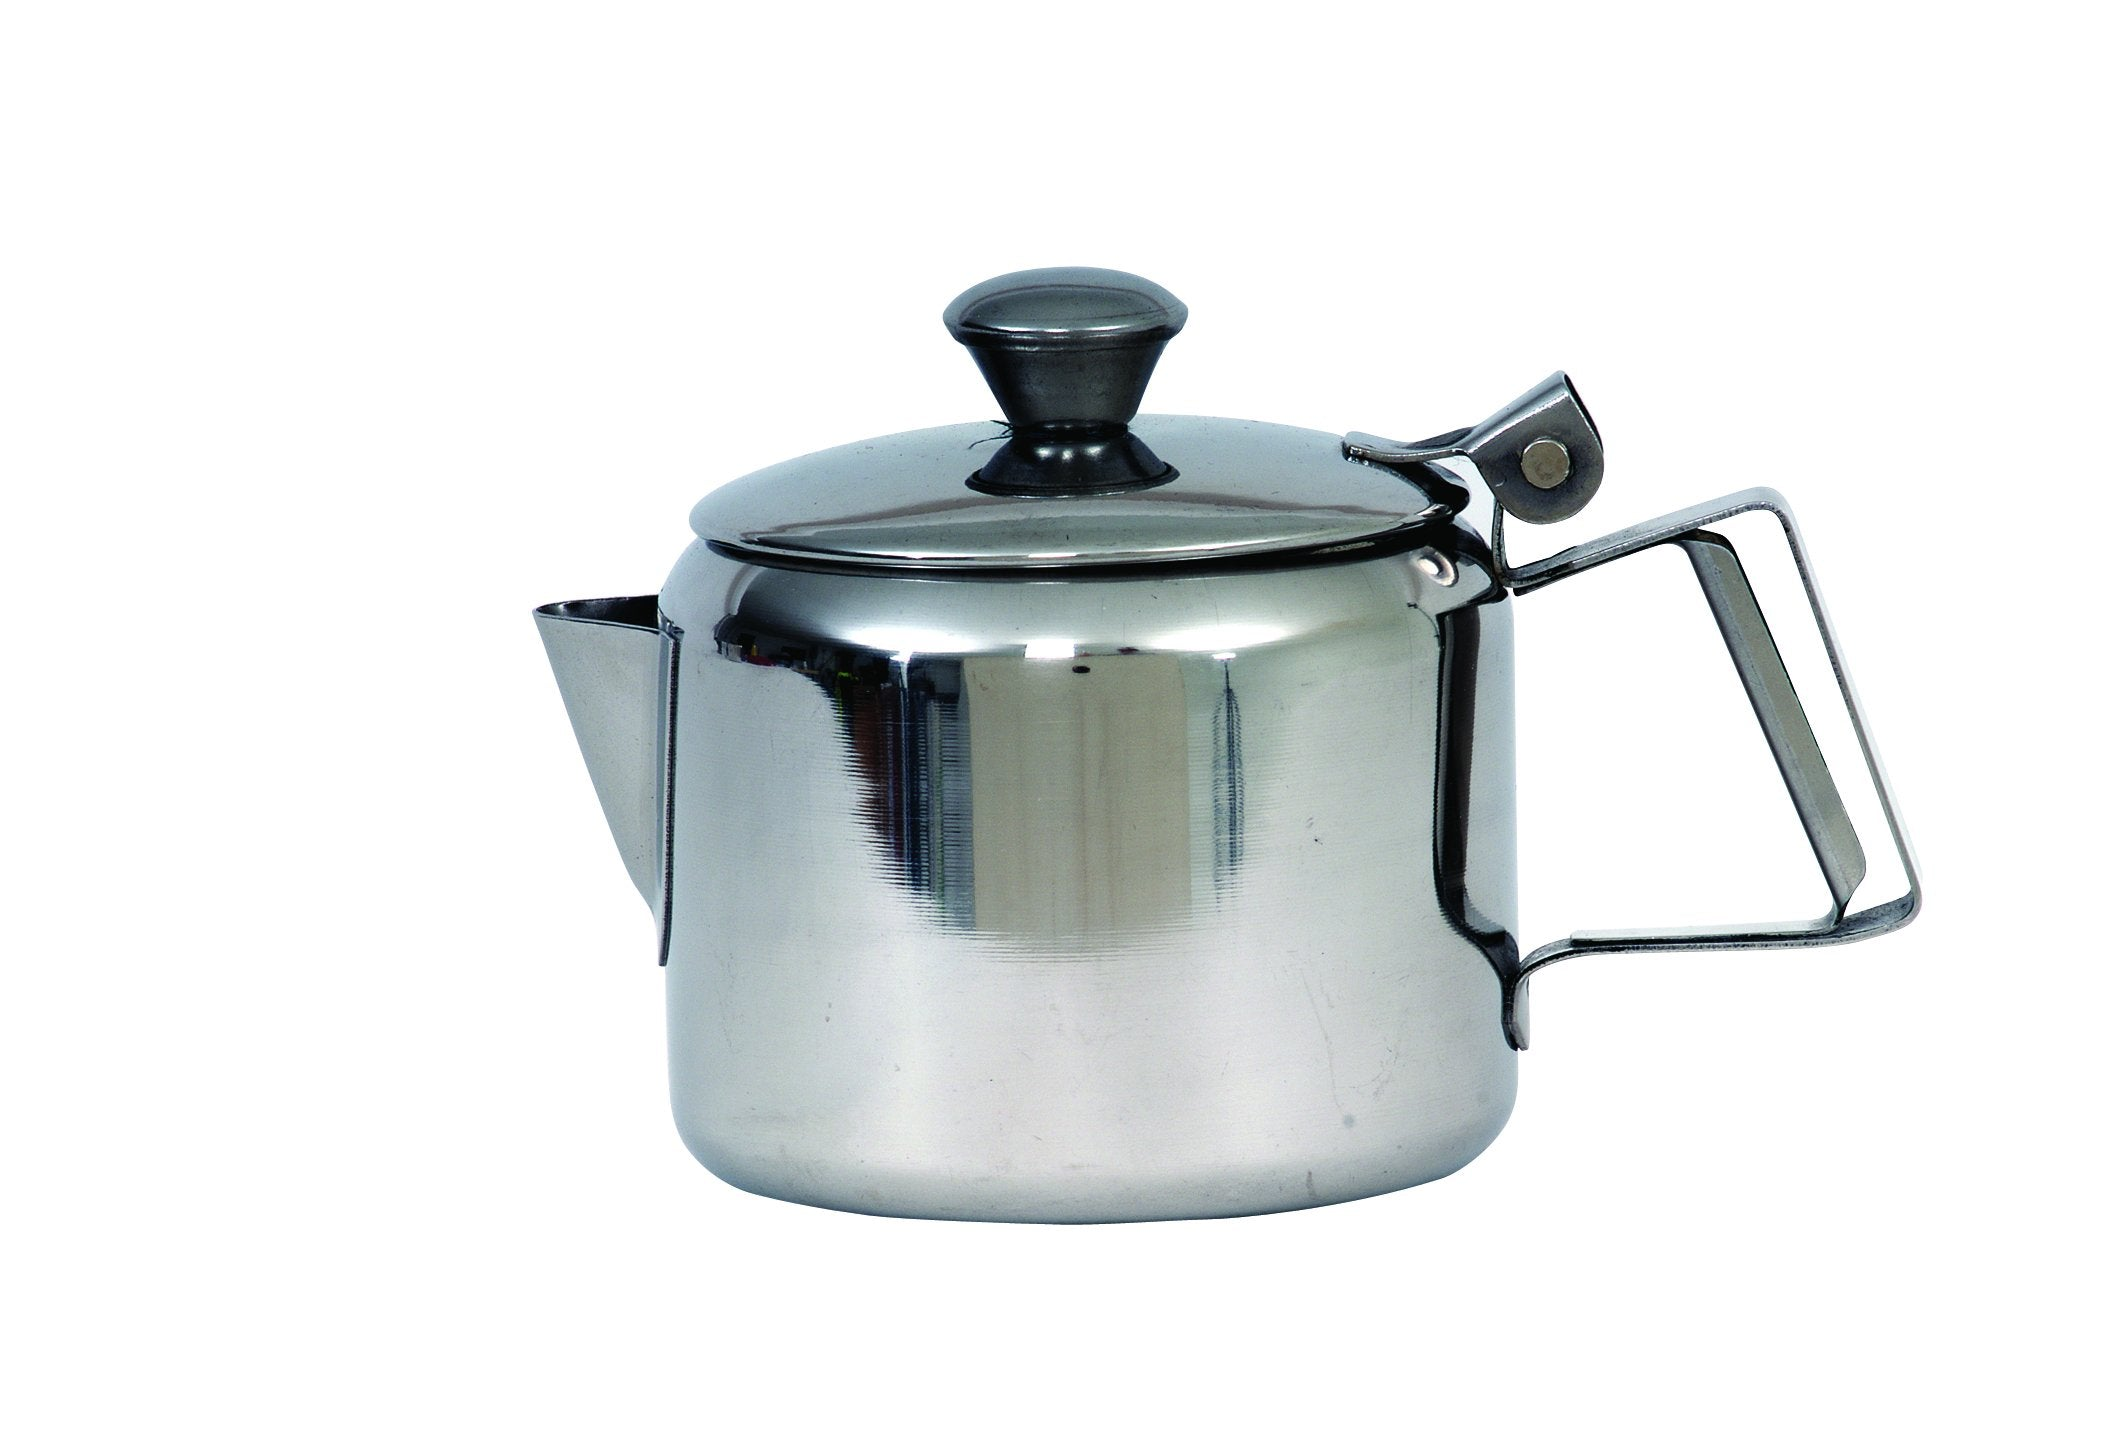 GenWare Stainless Steel Economy Teapot 2L/70oz